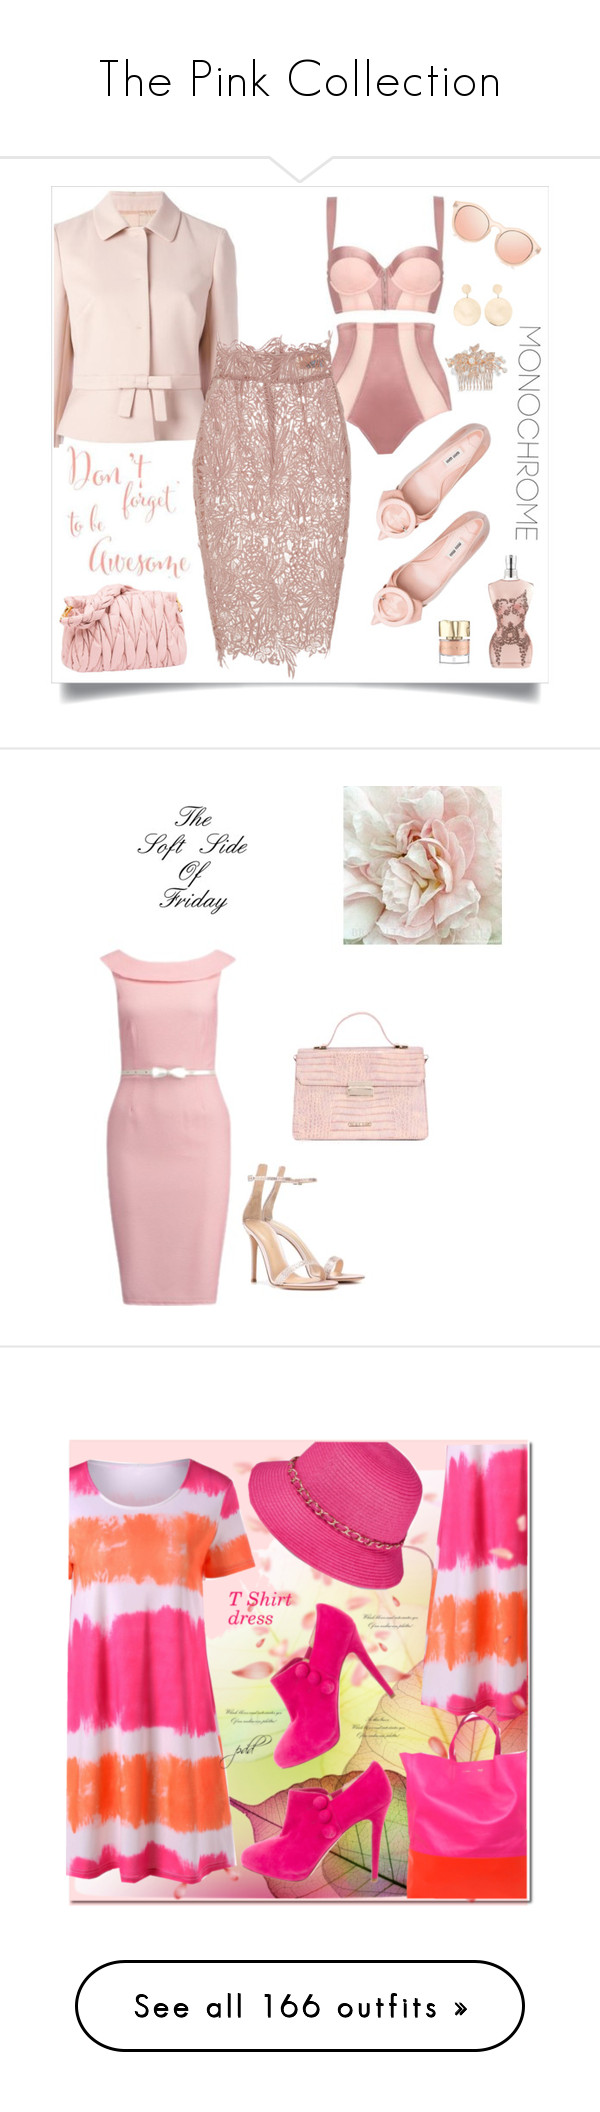 """""""The Pink Collection"""" by kimberlydalessandro ❤ liked on Polyvore featuring Le Specs, Nina, RED Valentino, La Perla, Blumarine, Mateo, Jean-Paul Gaultier, Smith & Cult, LYDC and Gianvito Rossi"""